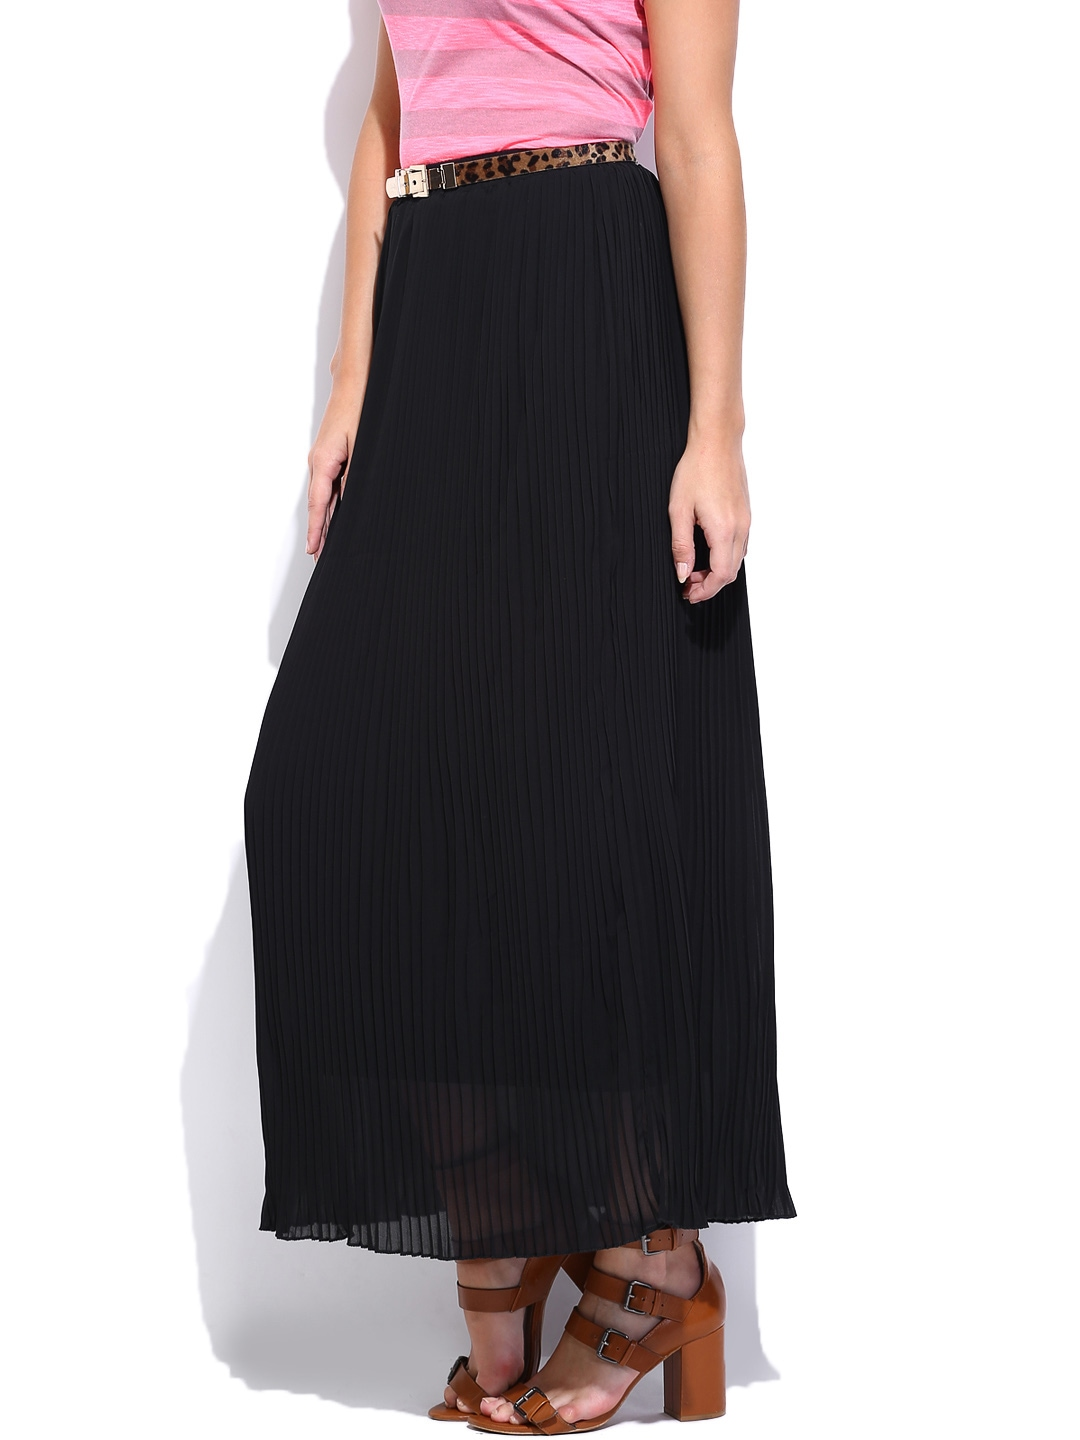 Black skirts probably comprise one of a woman's most important wardrobe items. We have a marvelous selection of black skirts in mini, midi and maxi lengths. We have black skirts with asymmetrical hemlines, and with slits on the sides, fronts or backs. We feature mini skater skirts in black, and straight mini skirts.